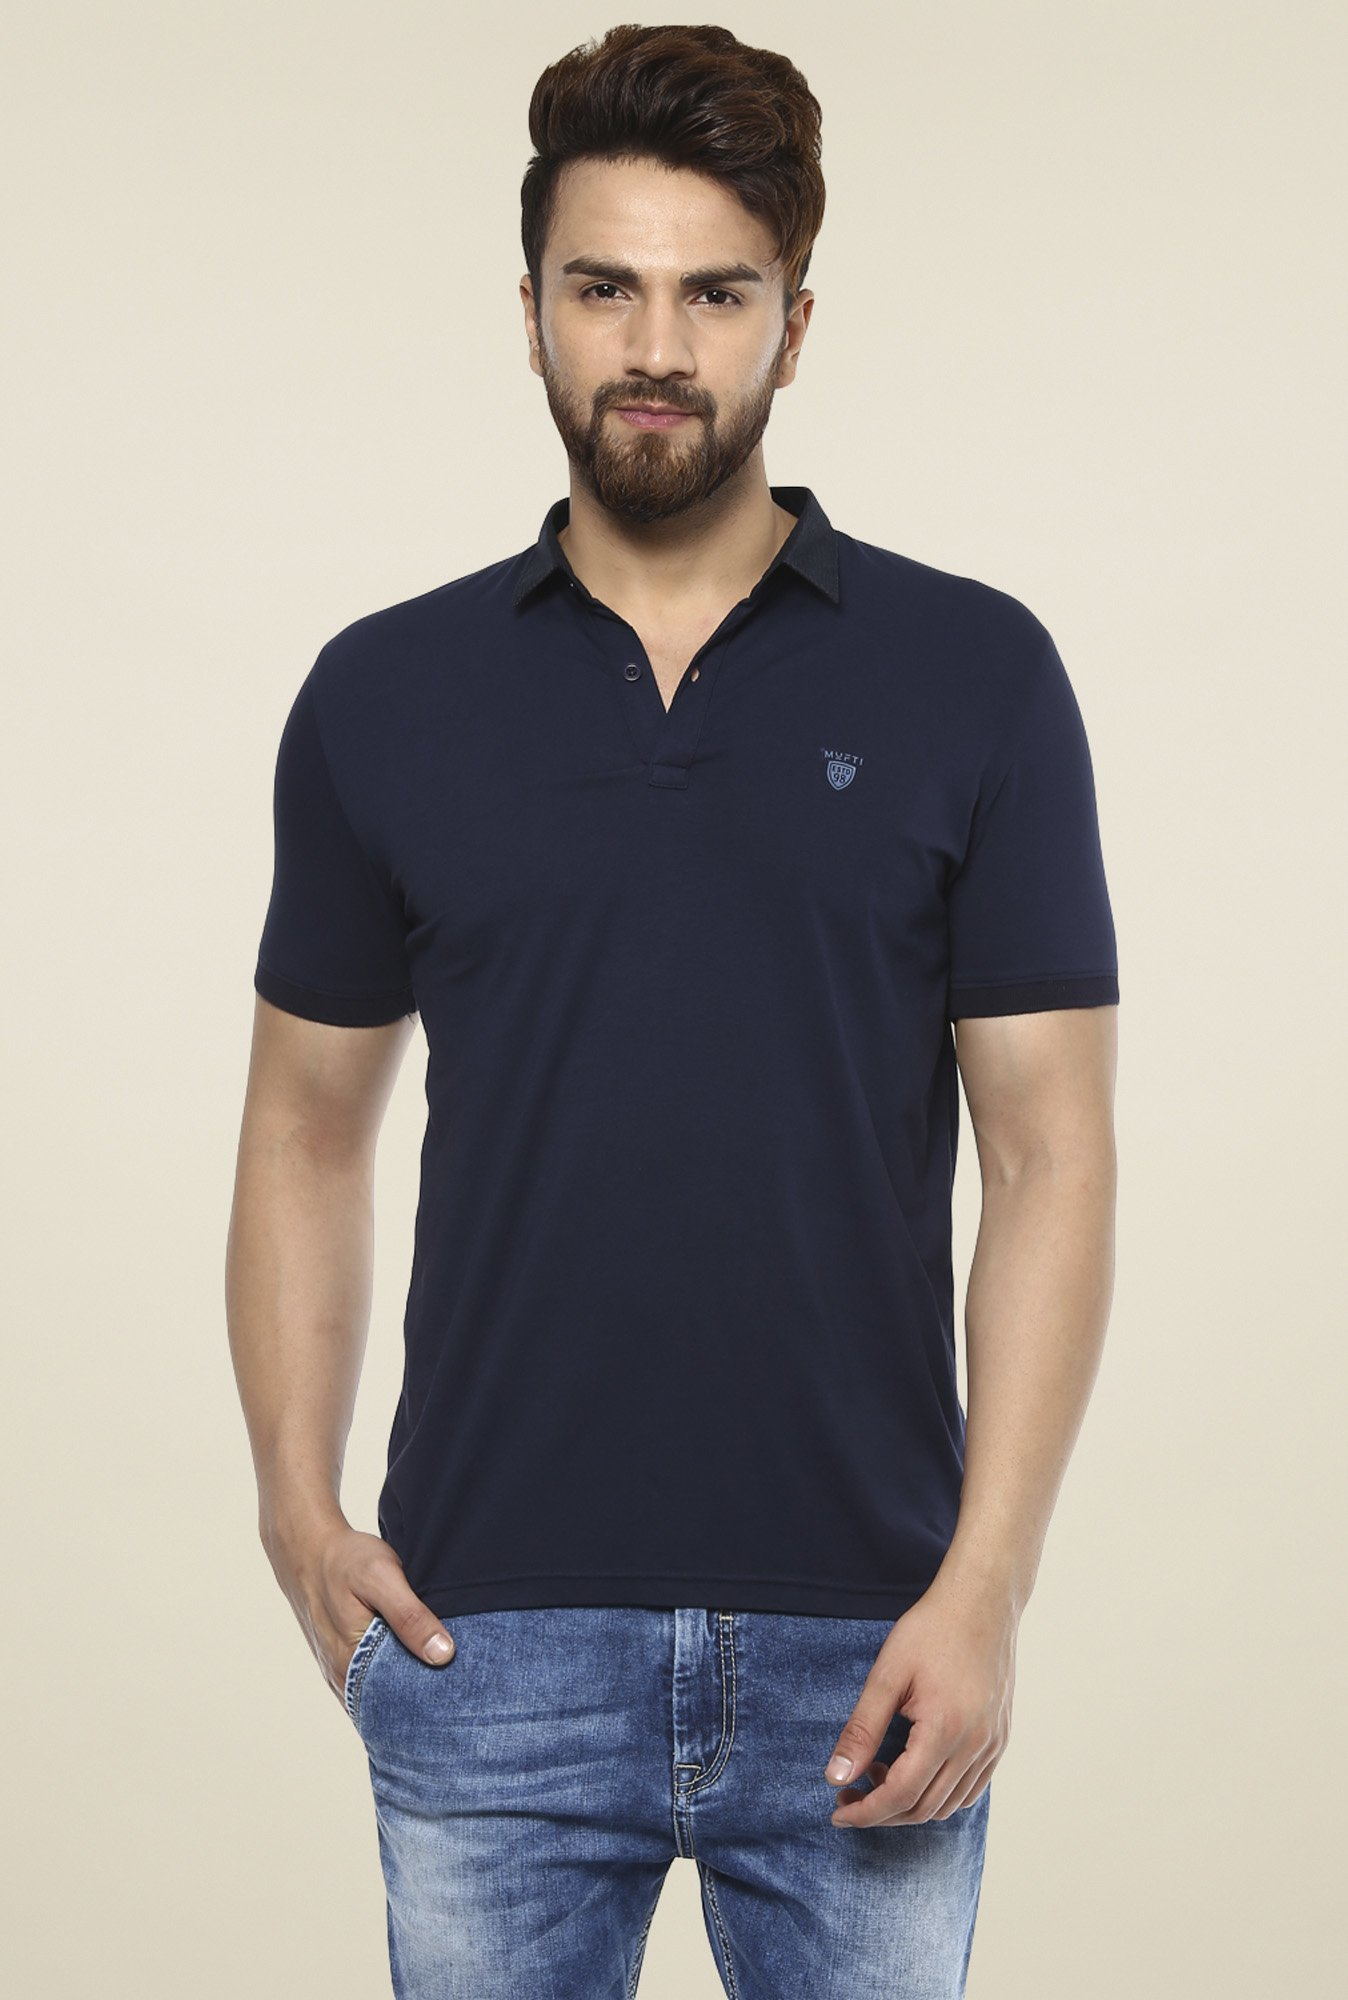 336c1d02c9e6 Buy Mufti Navy Half Sleeves Slim Fit Polo T-Shirt for Men Online ...